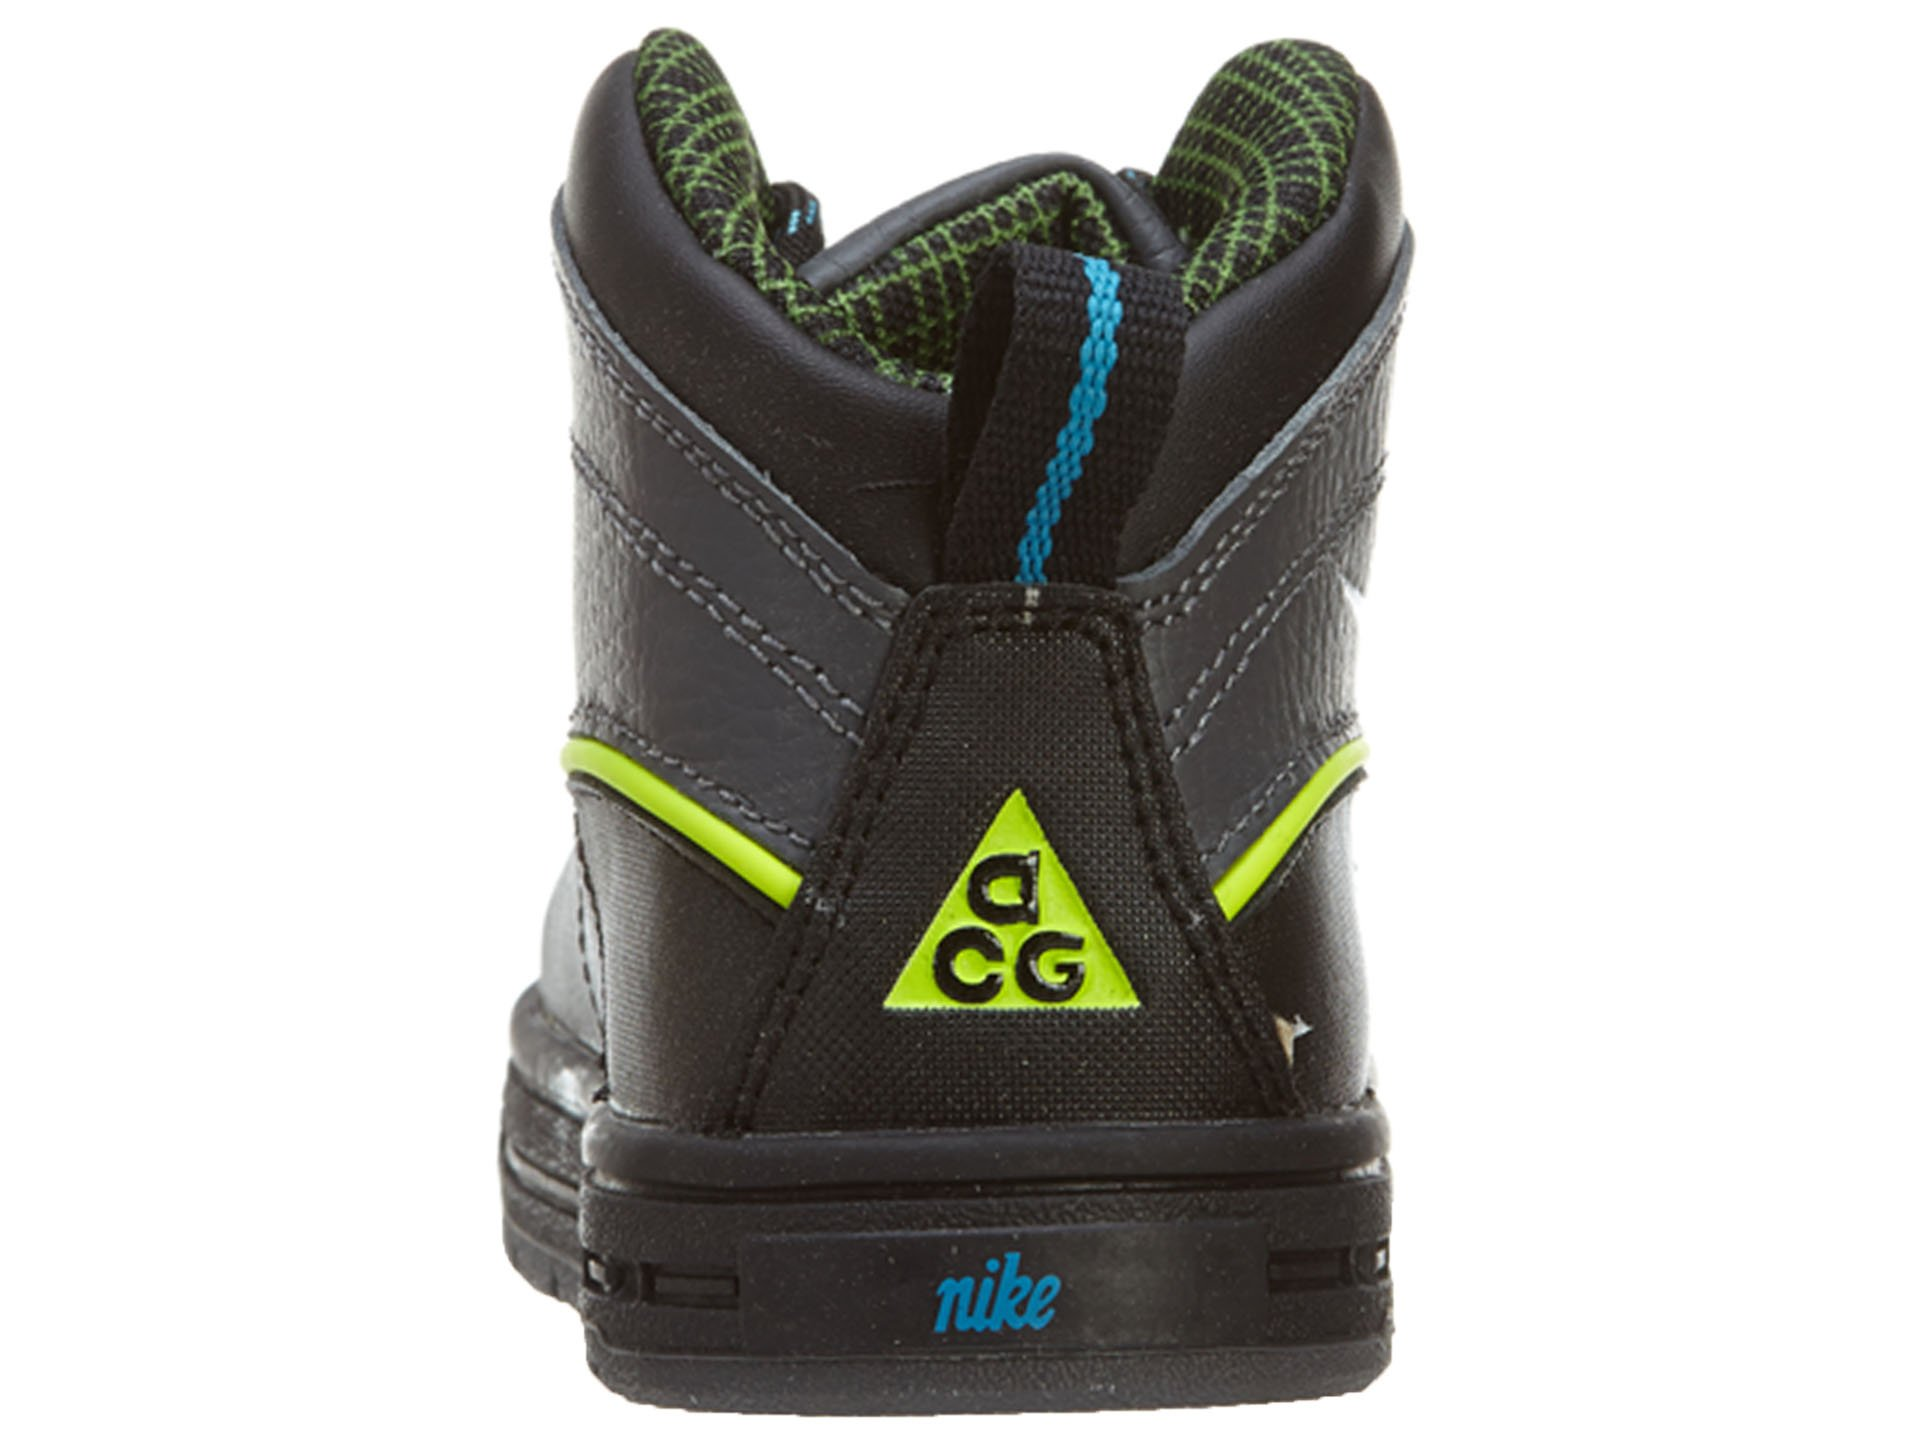 Nike Woodside 2 High (Td) Toddlers Boys/Girls Style: 524874-002 Size: 4 by Nike (Image #3)